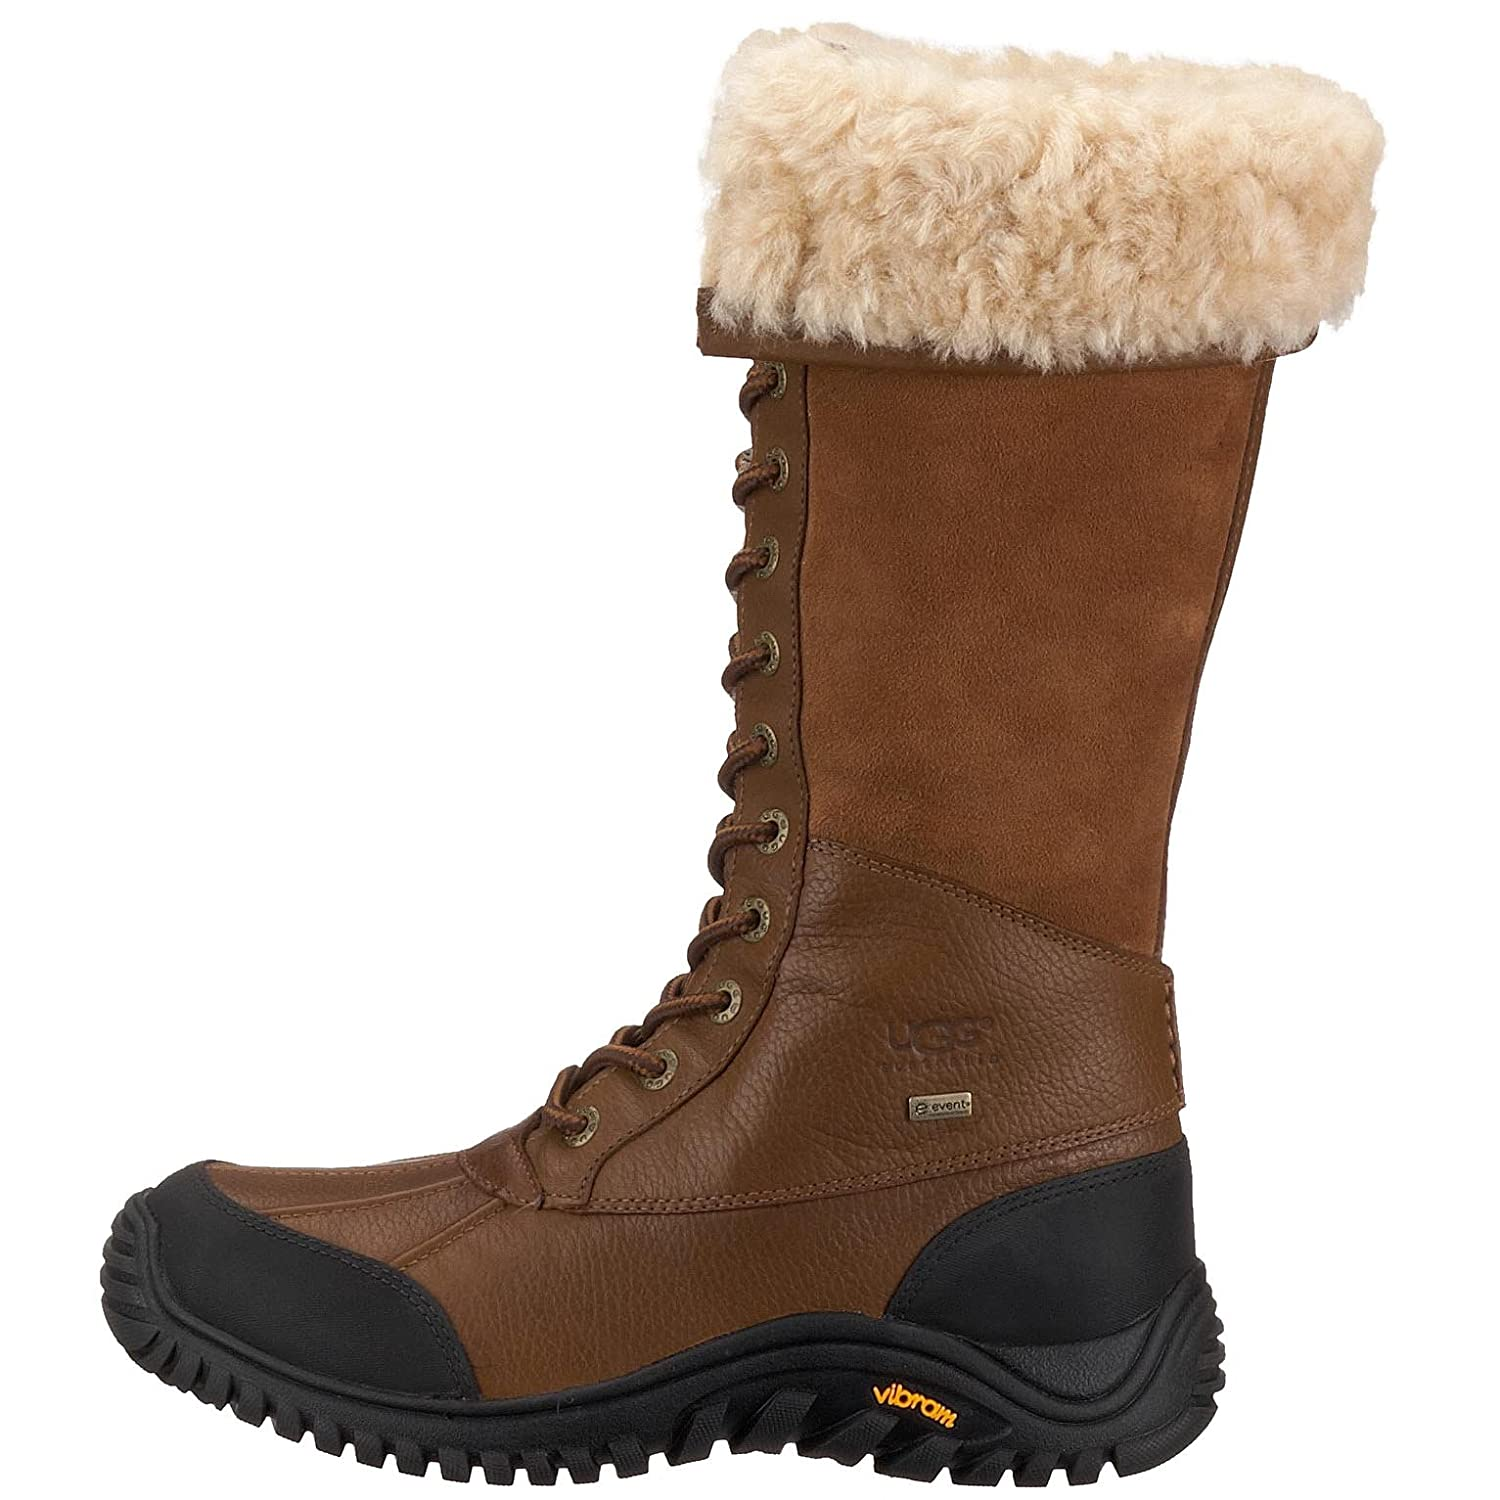 c682a1194f2 UGG Womens Adirondack Tall Snow Boot